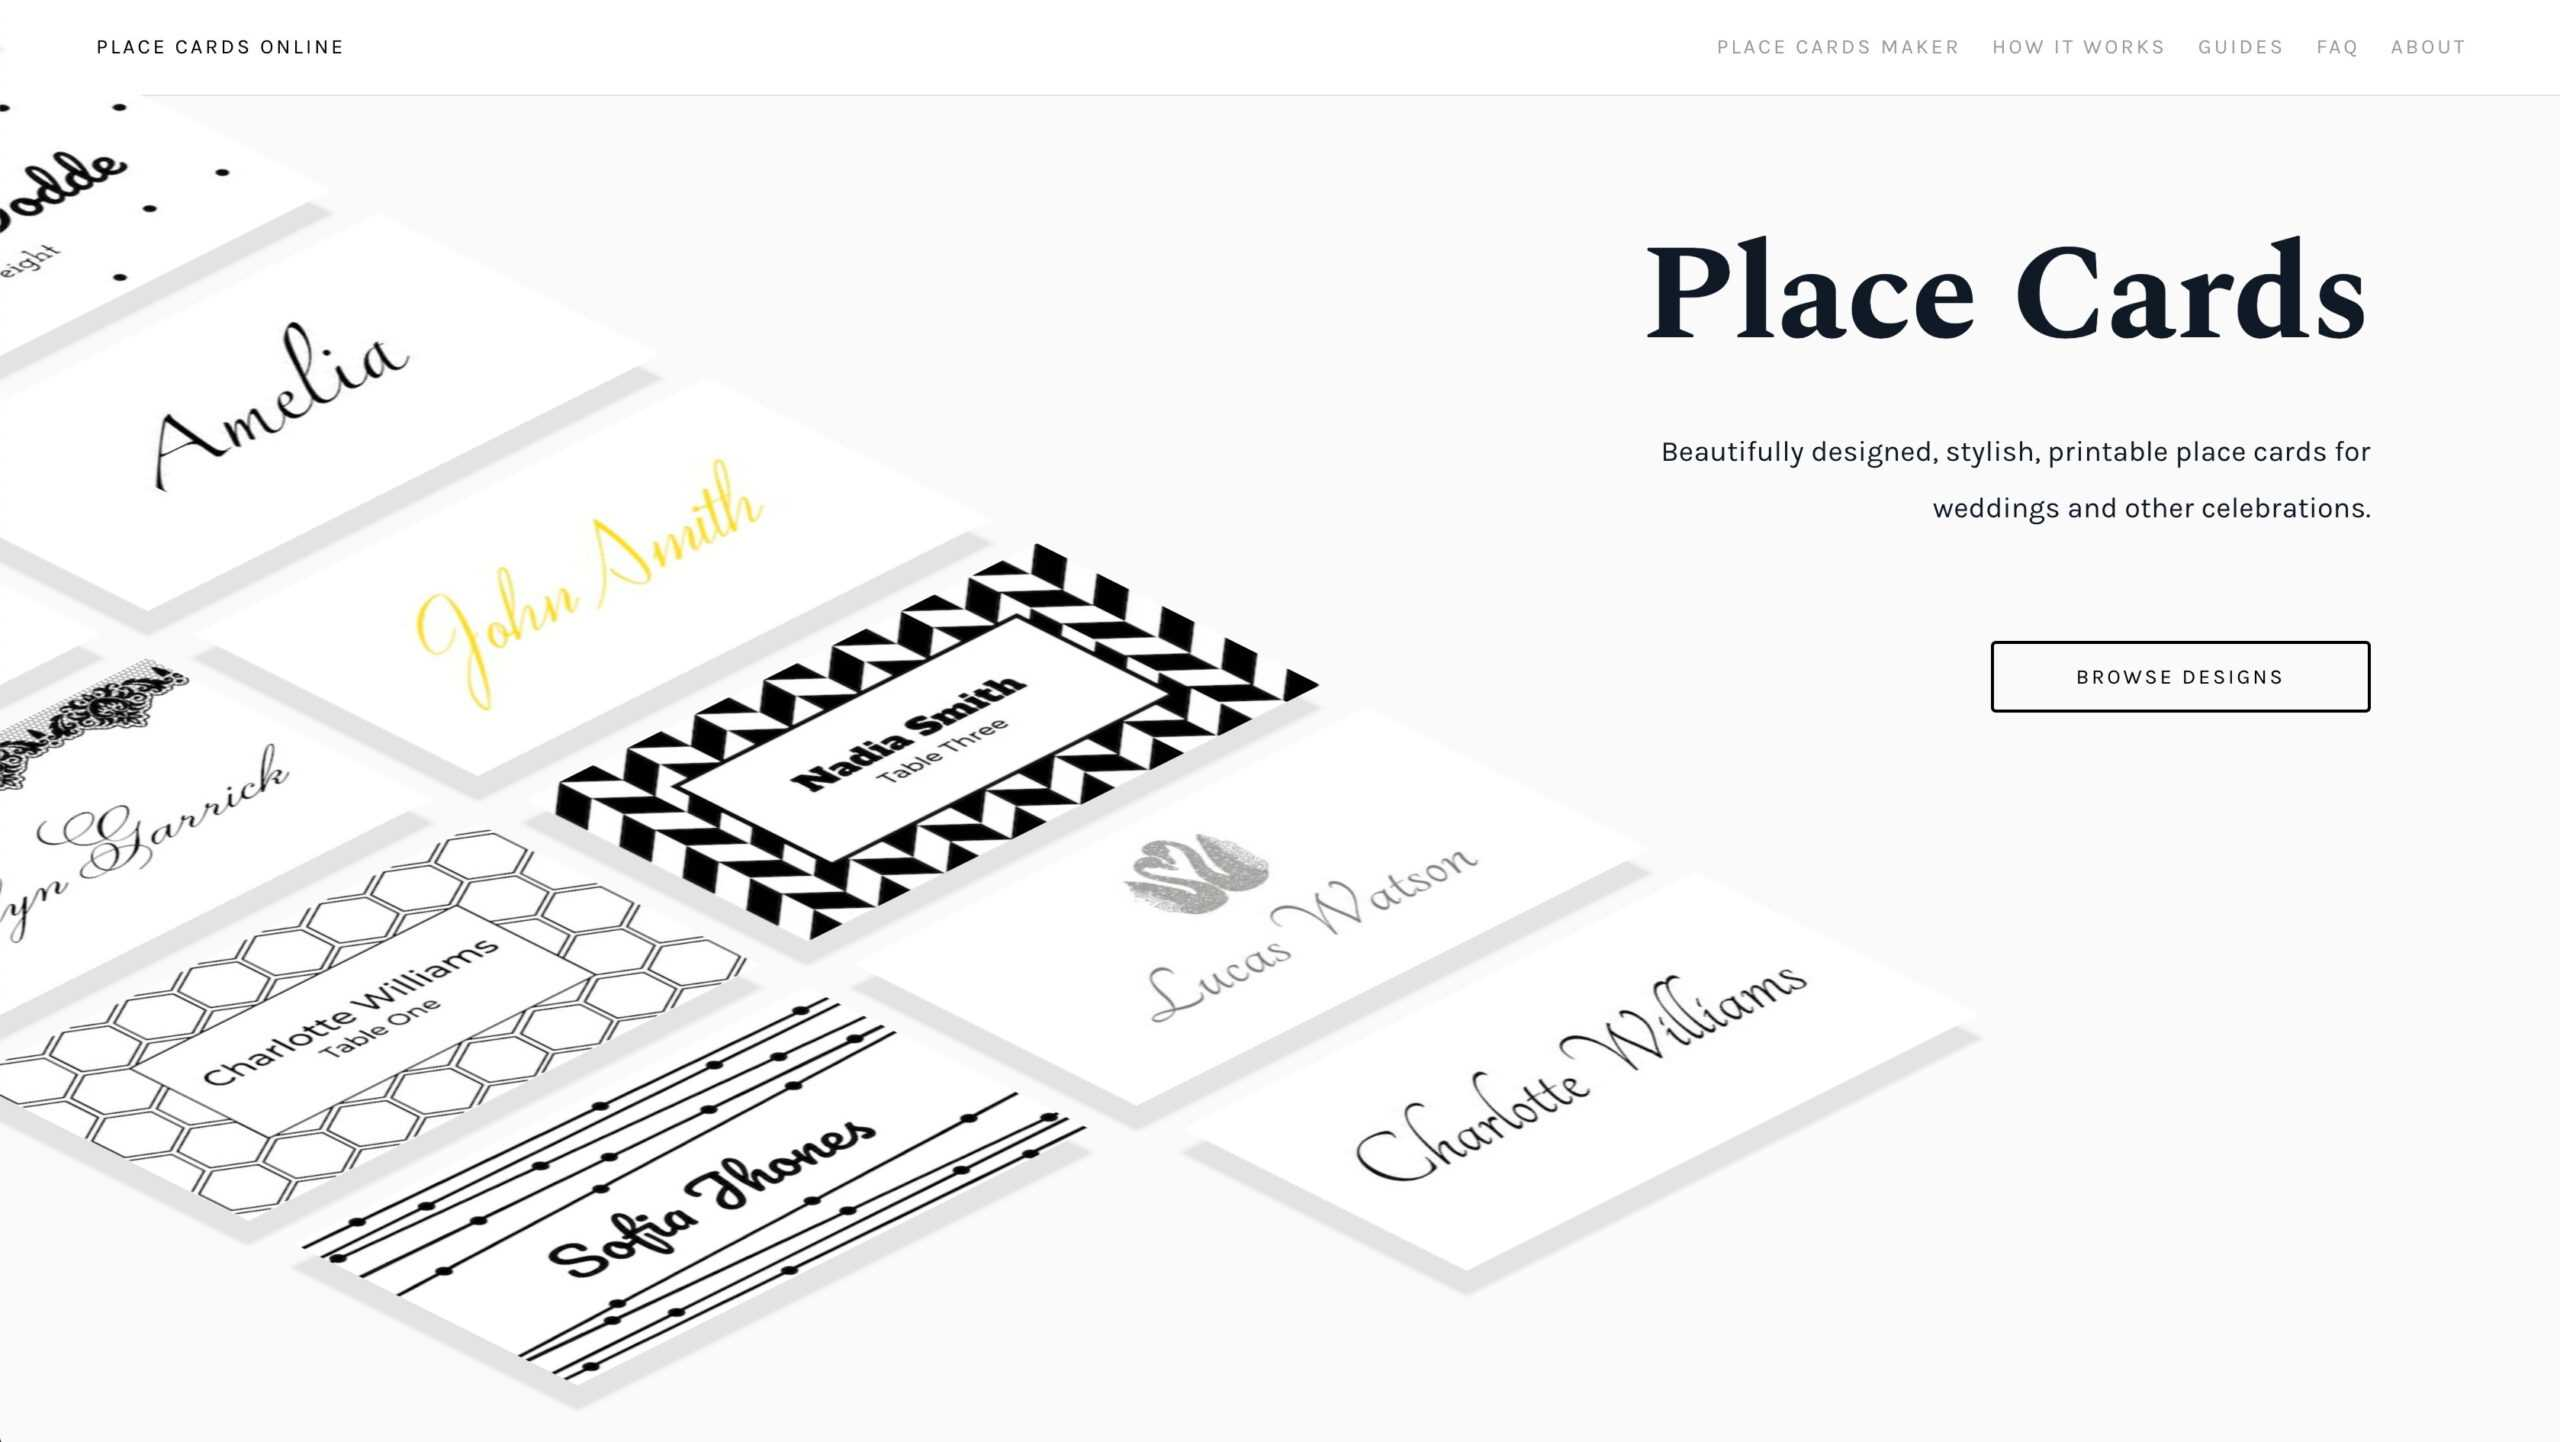 Place Cards Online - Place Cards Maker. Beautifully Designed Inside Celebrate It Templates Place Cards